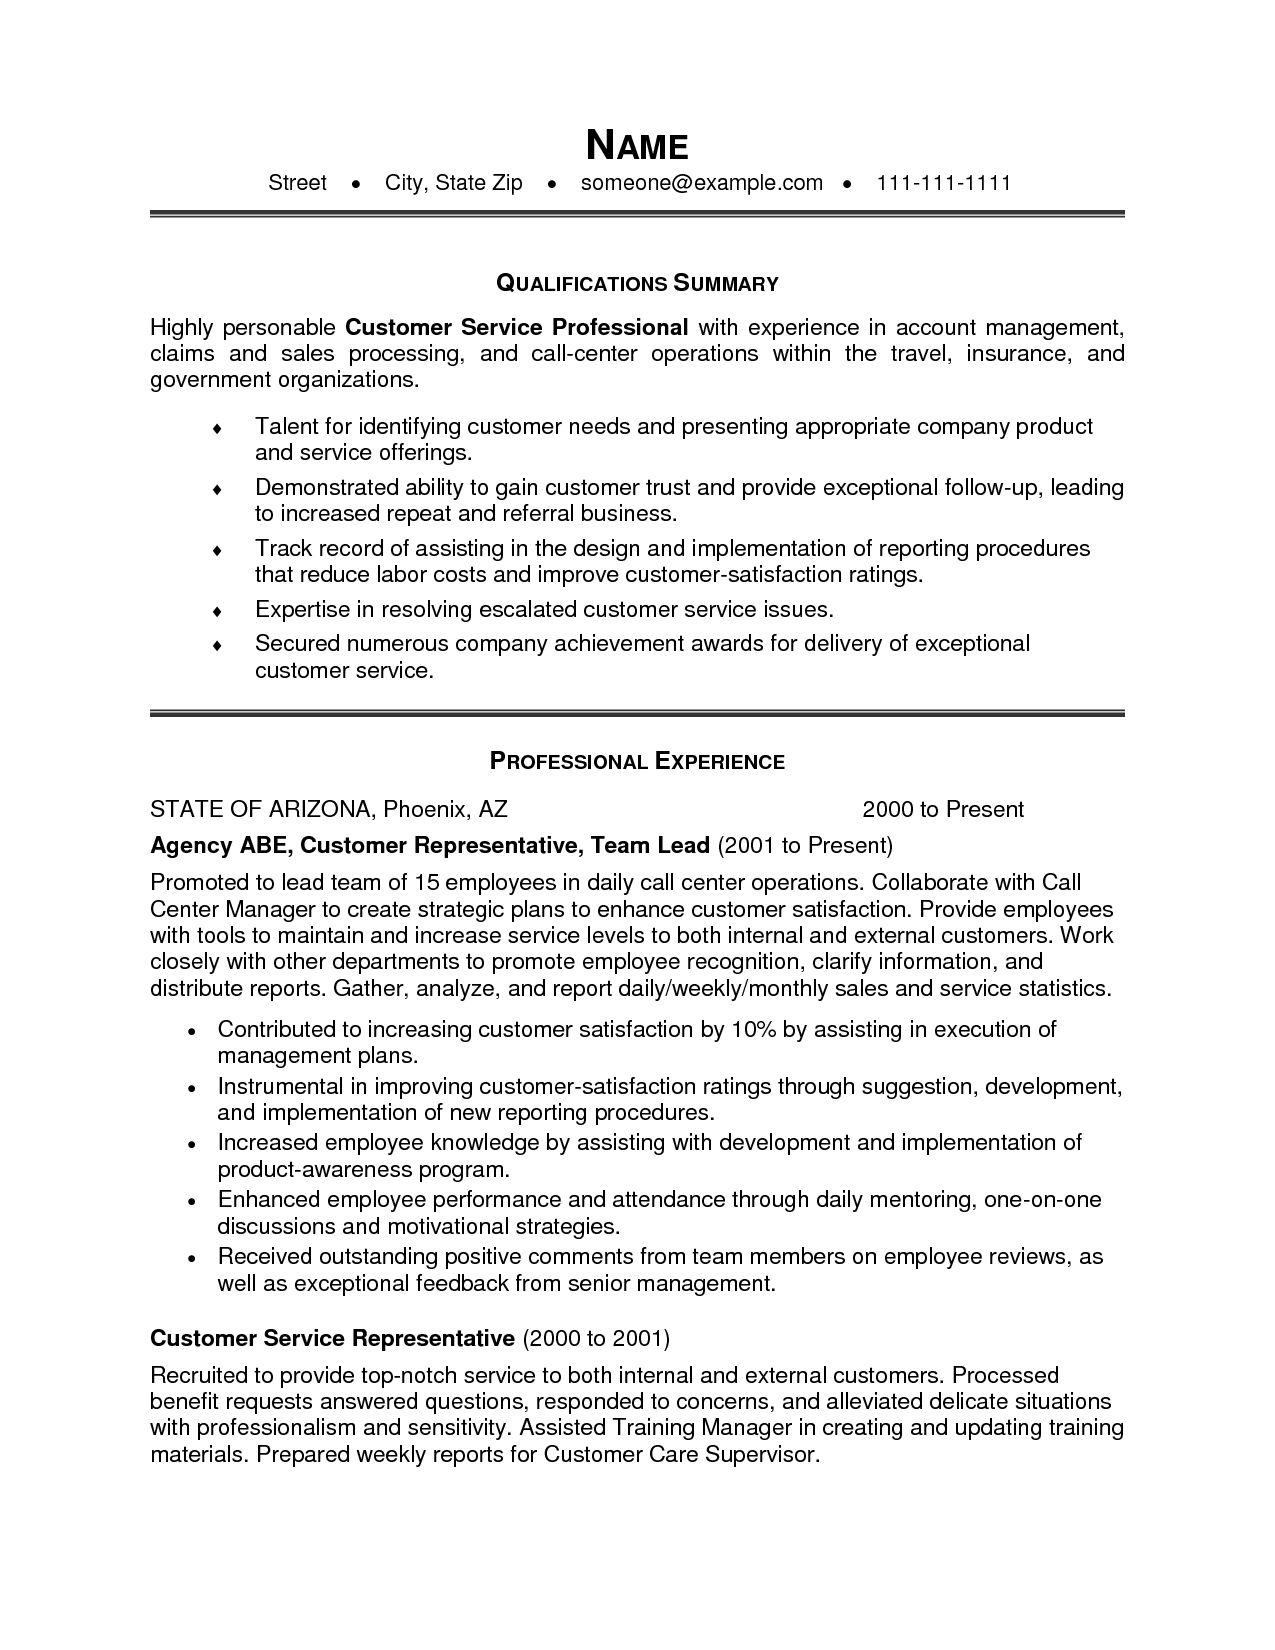 new customer service resume summary examples template profile samples simple student Resume Resume Profile Summary Customer Service